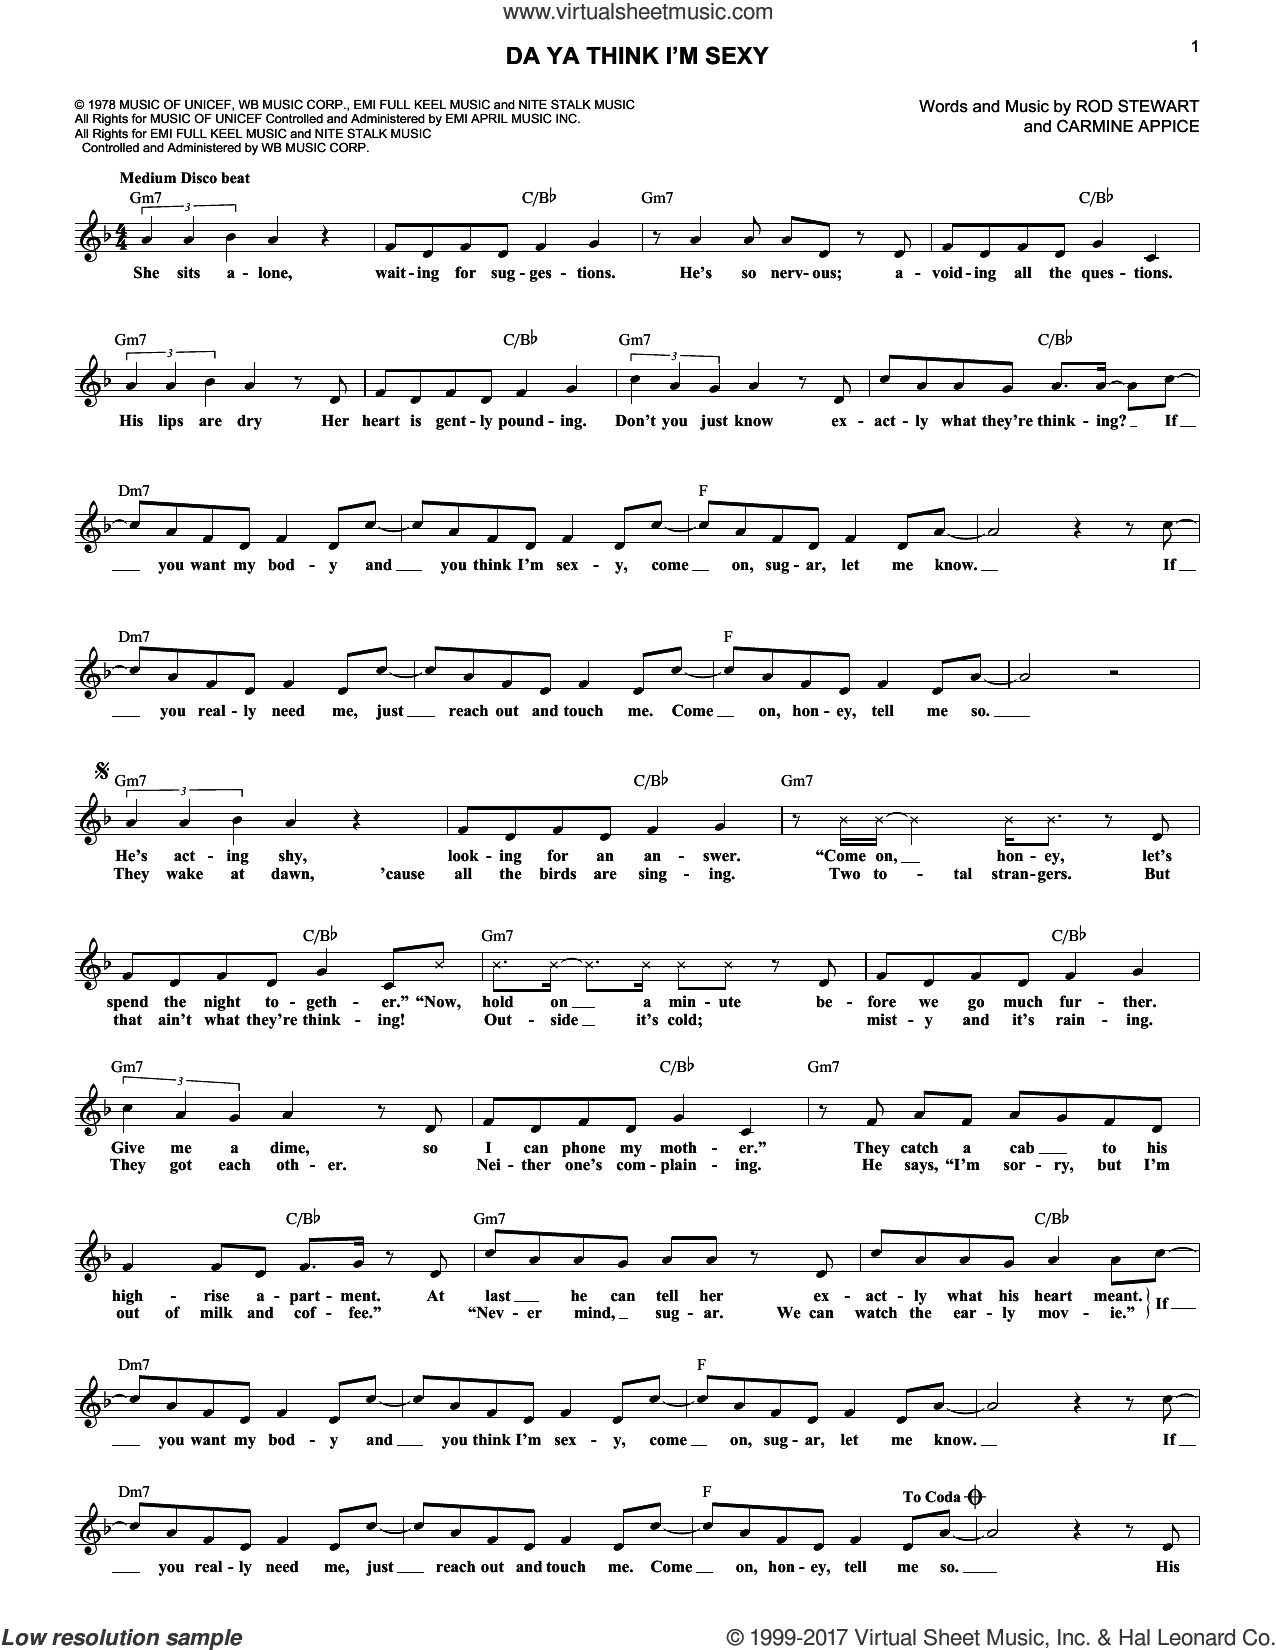 Da Ya Think I'm Sexy sheet music for voice and other instruments (fake book) by Rod Stewart and Carmine Appice, intermediate skill level